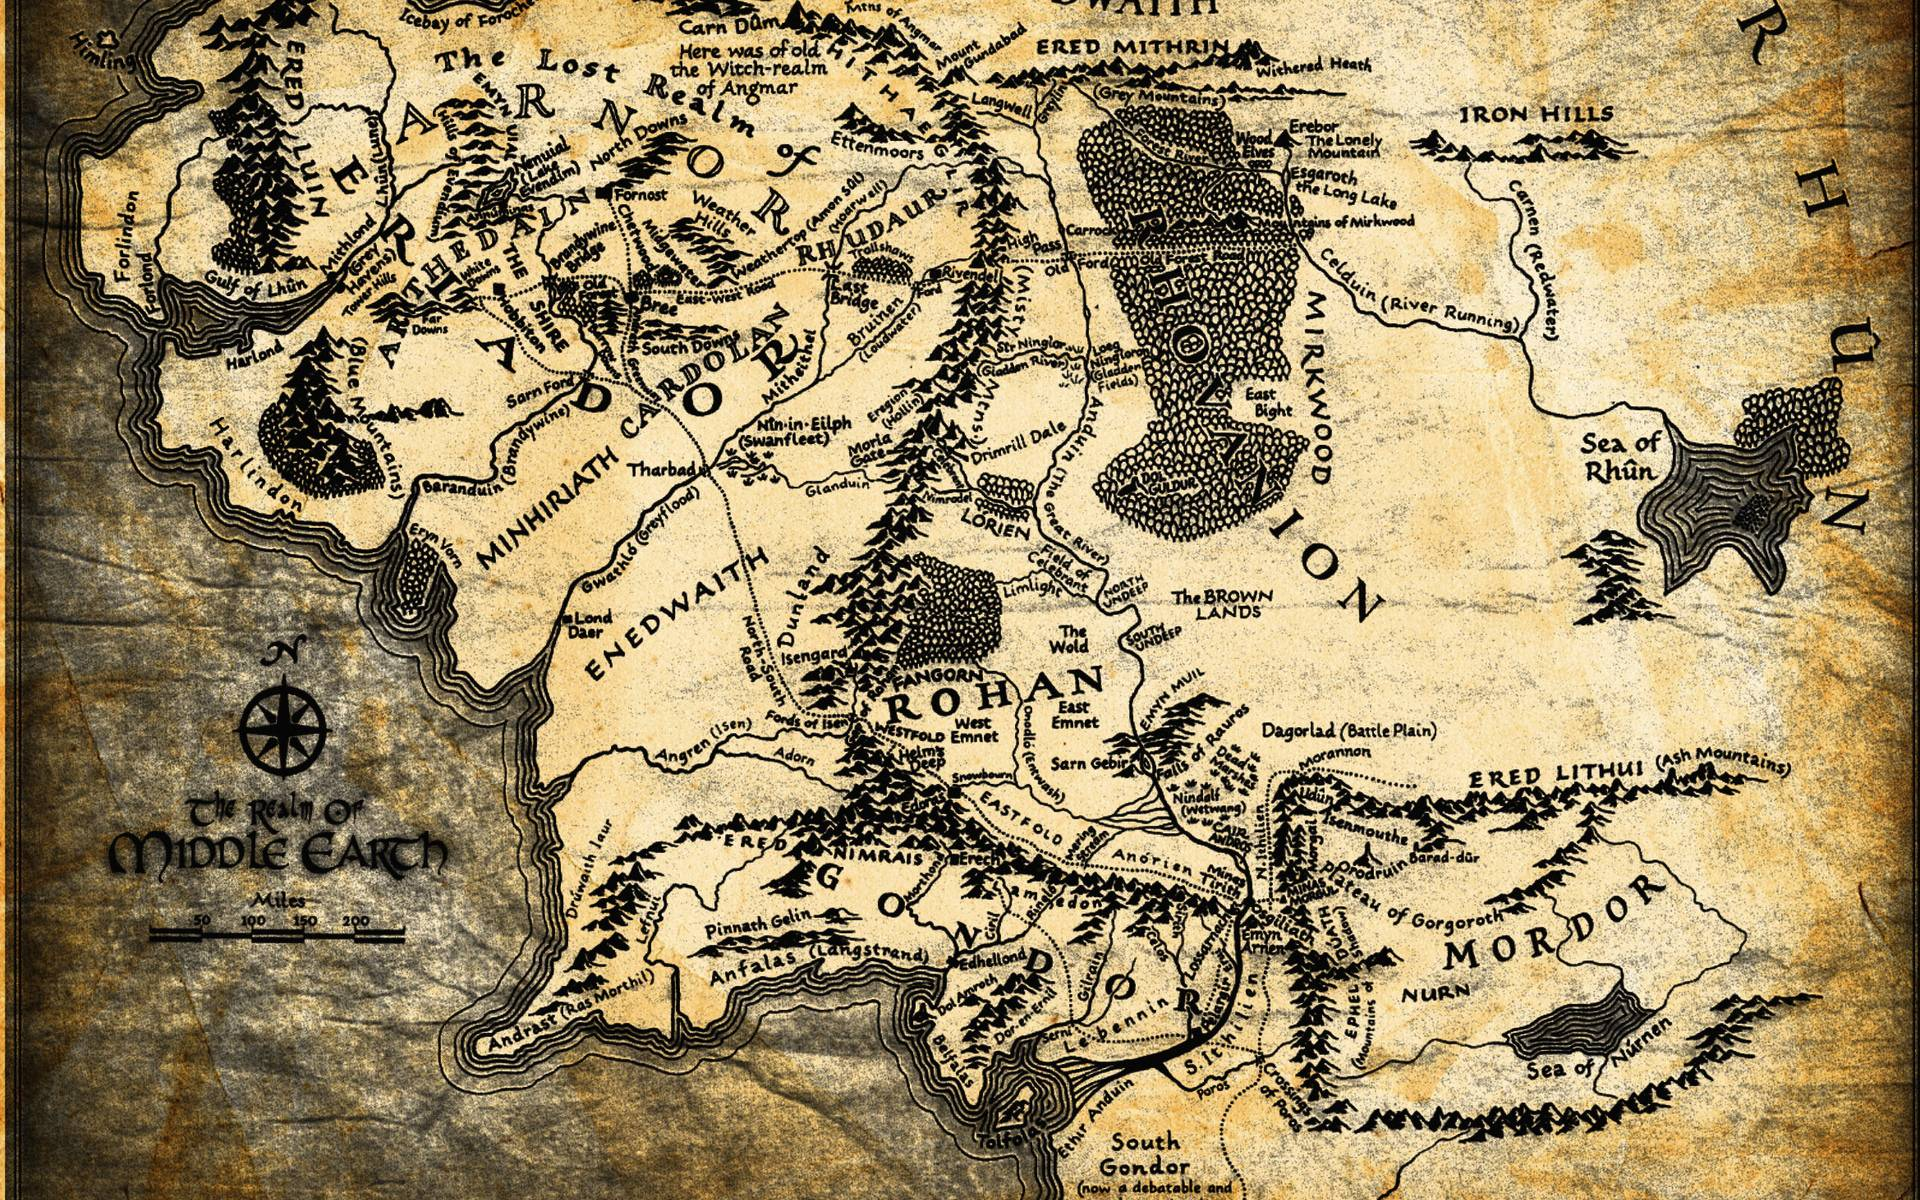 Lord of the rings iphone wallpapers wallpaper cave - Middle earth iphone wallpaper ...